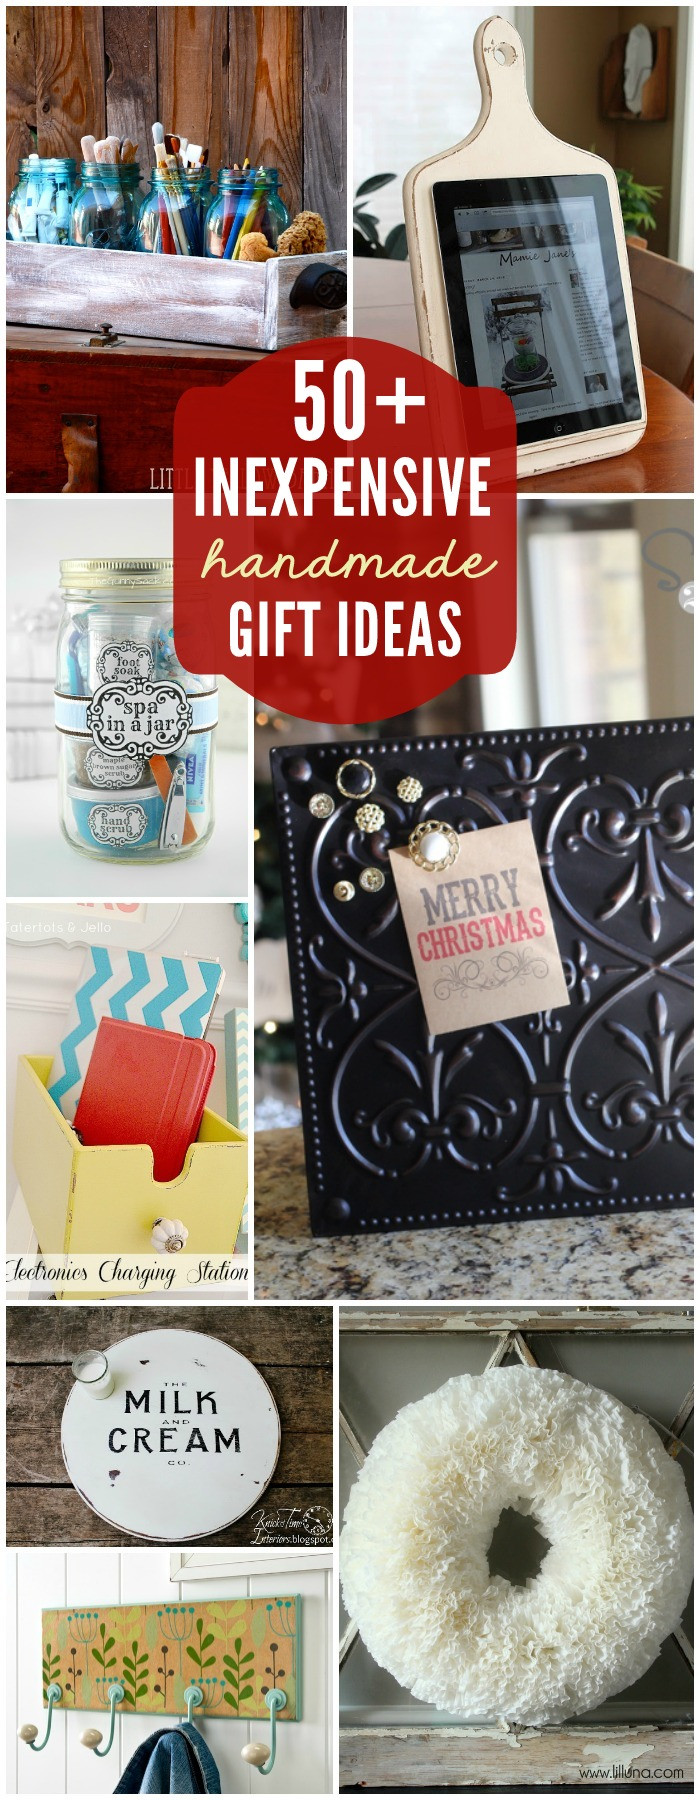 Cute DIY Christmas Gifts  75 Gift Ideas under $5